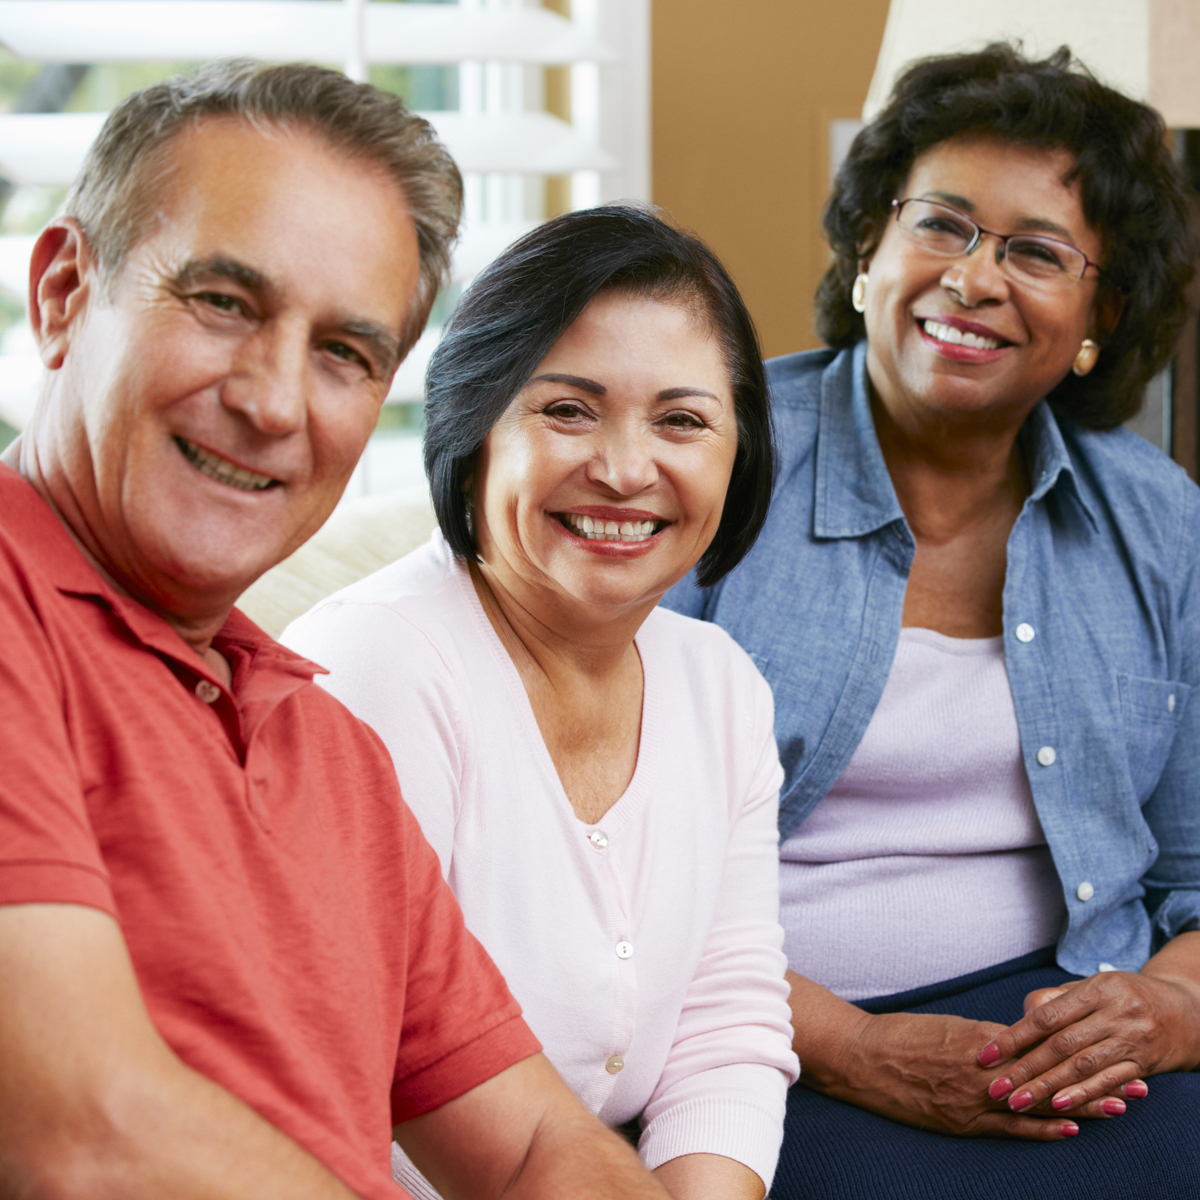 older-people-smiling-2